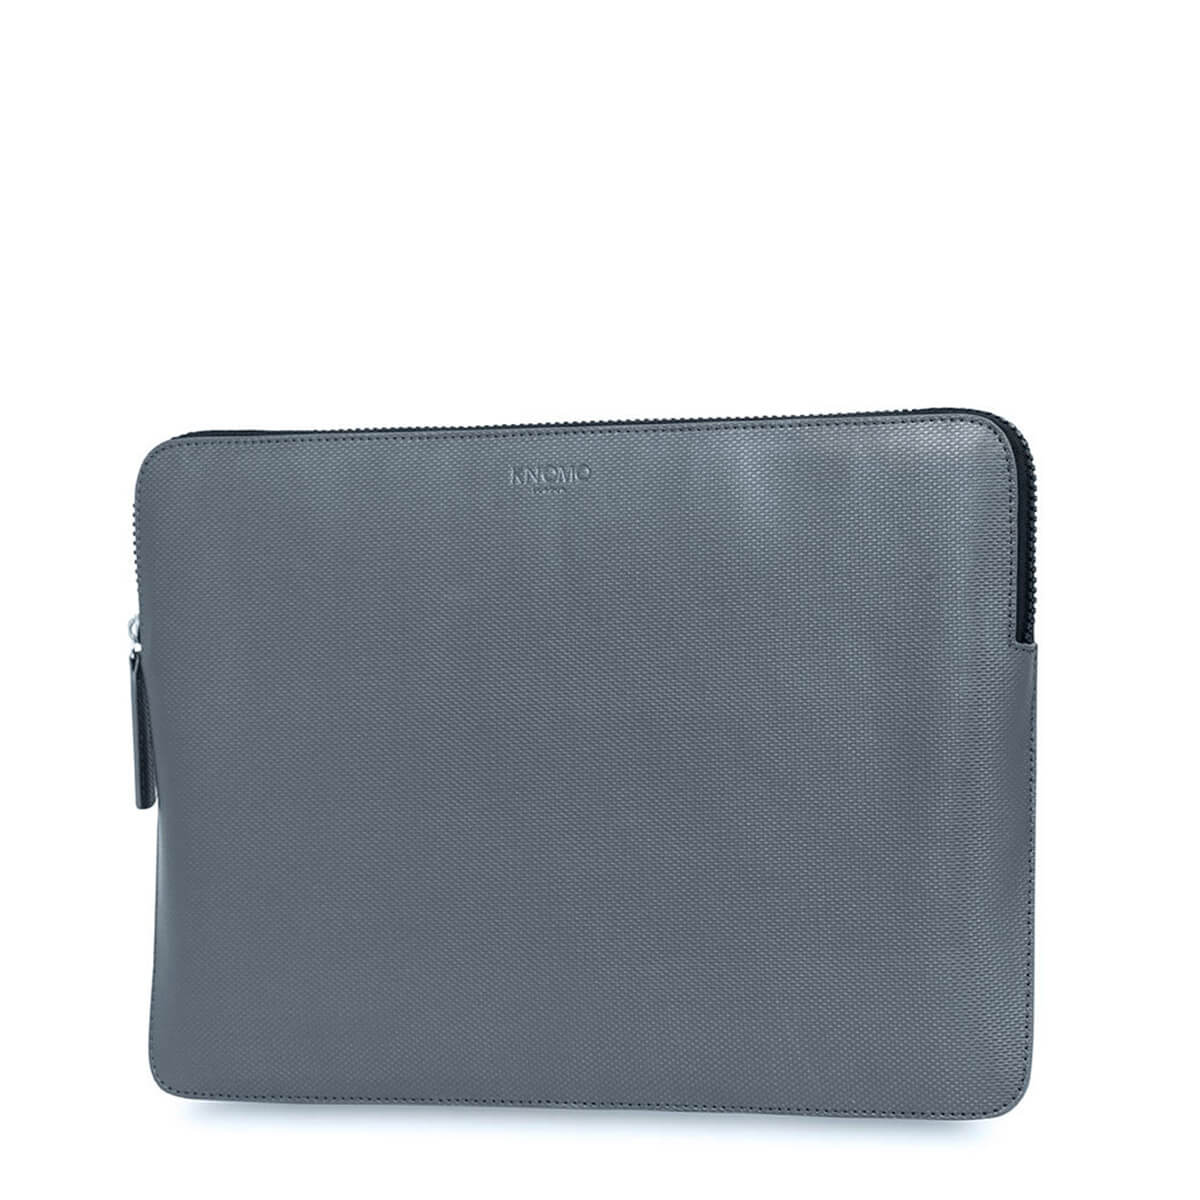 "Embossed Laptop Sleeve 12 inch Embossed Laptop Sleeve - 12"" -  Silver 